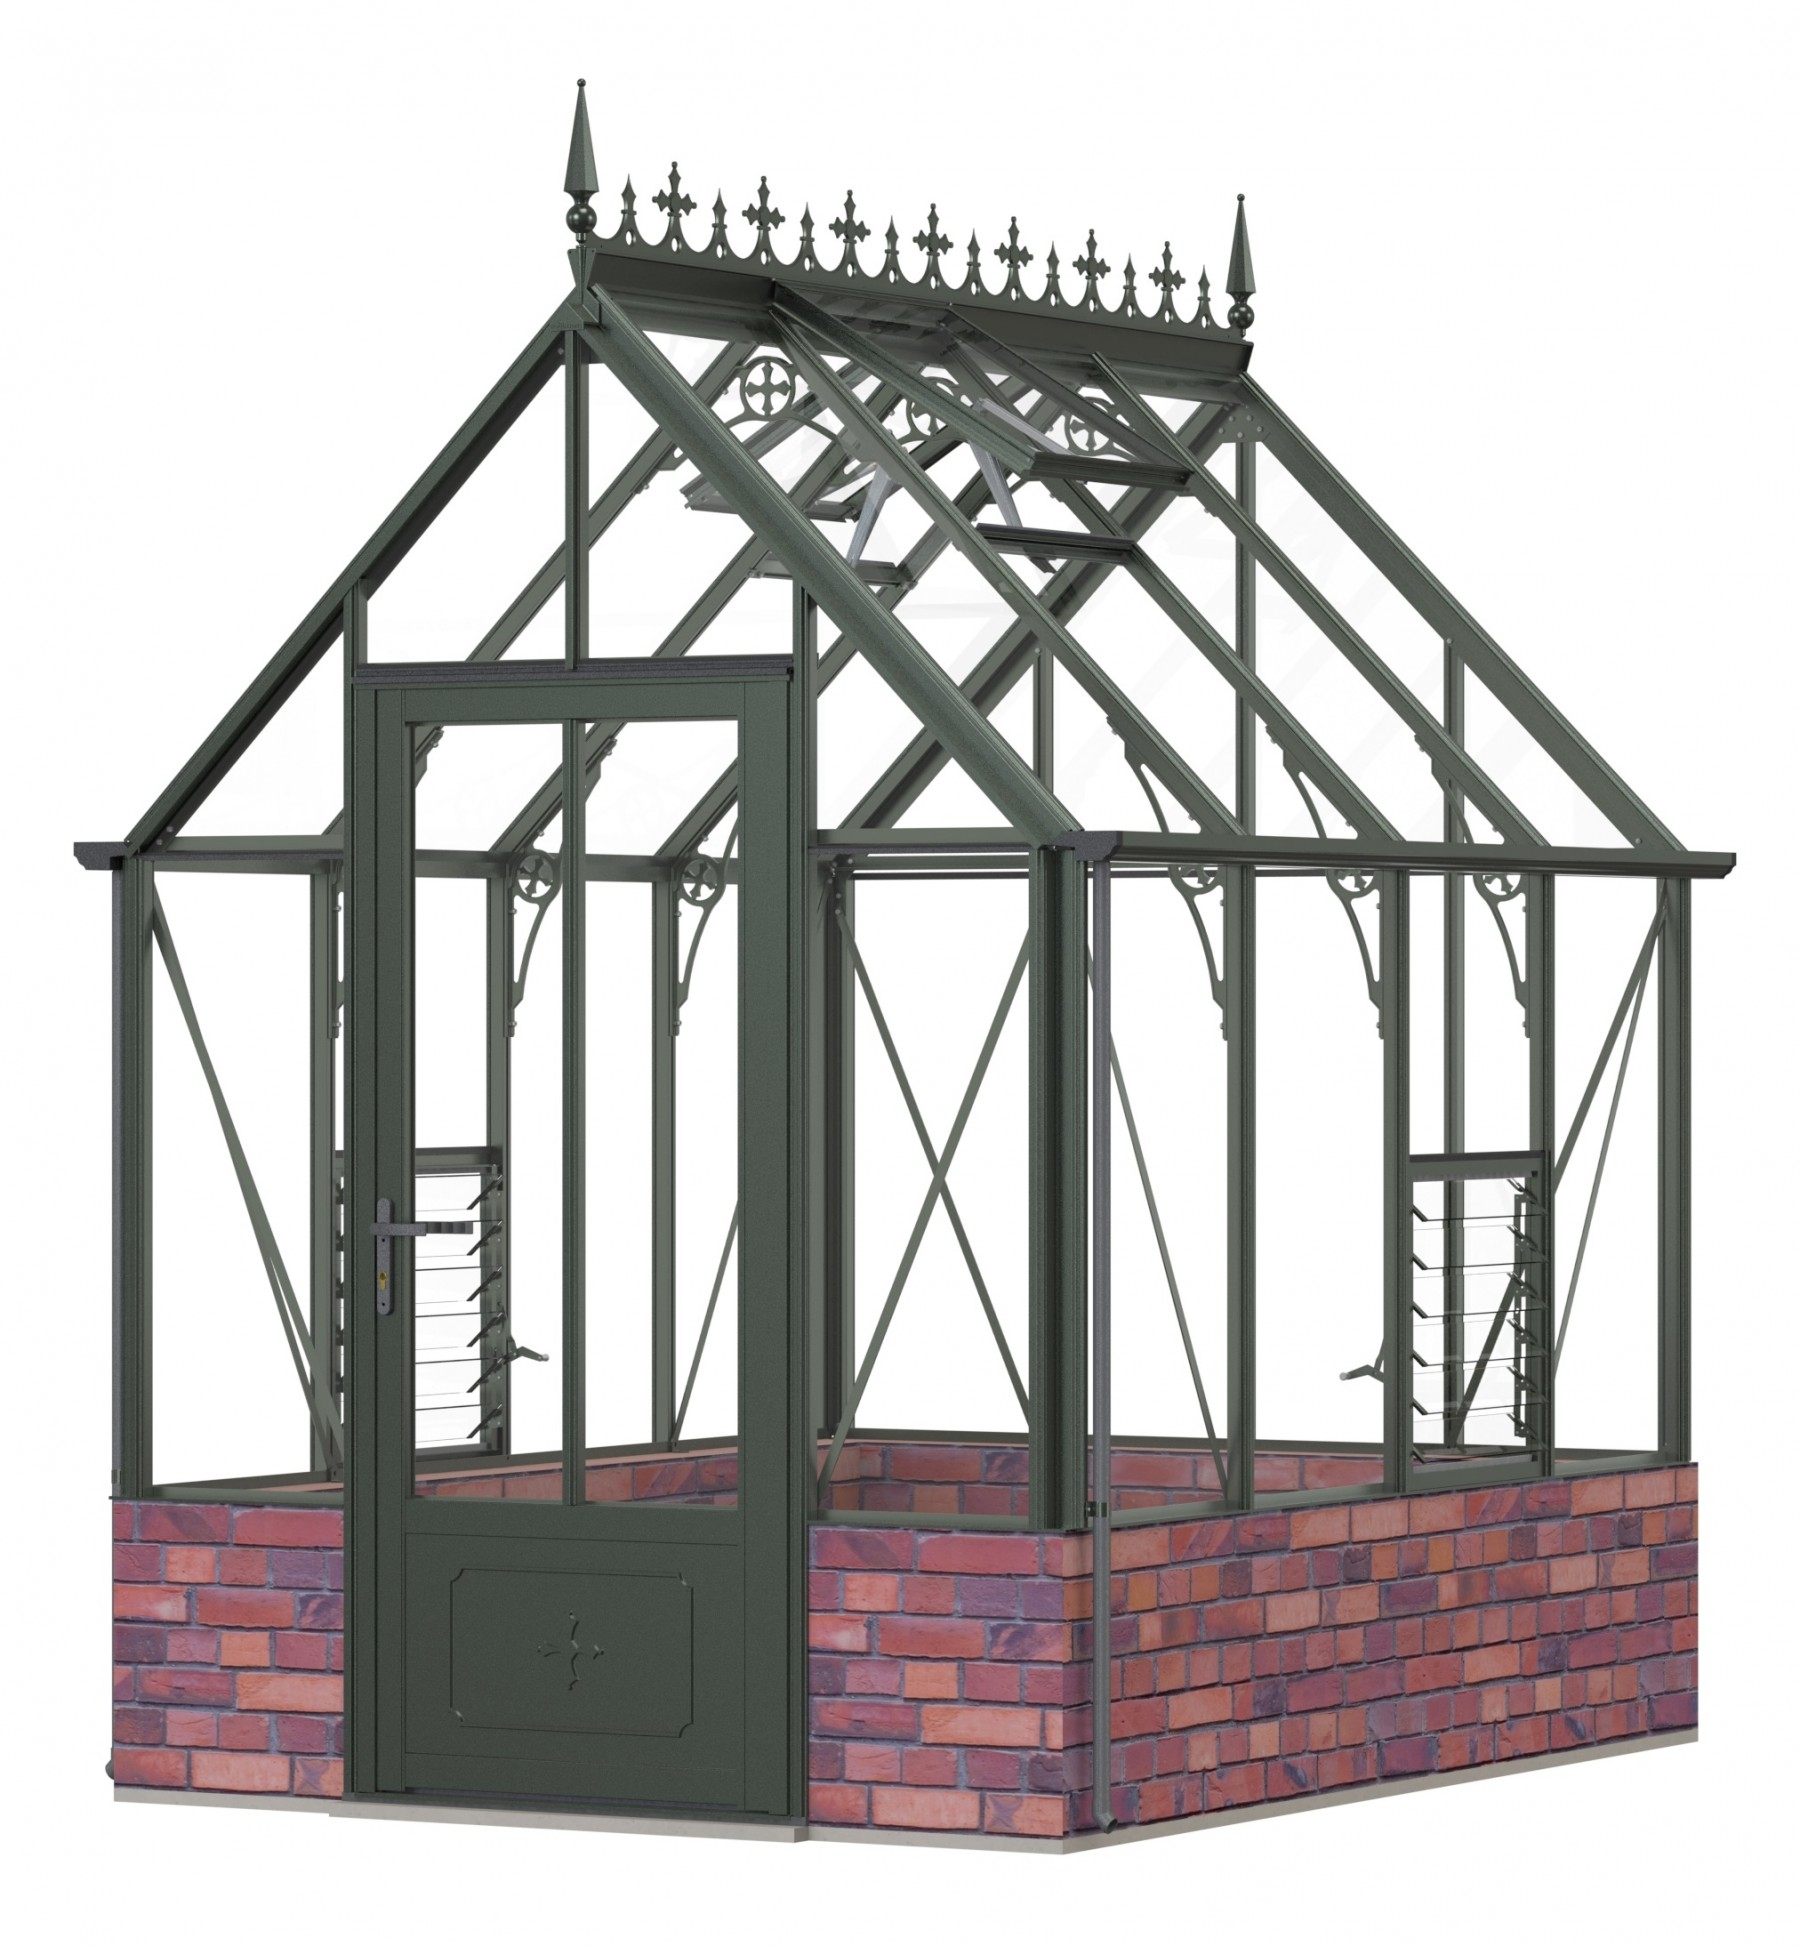 Robinsons Rugby dwarf wall Old Cottage Green 6ft x 8ft